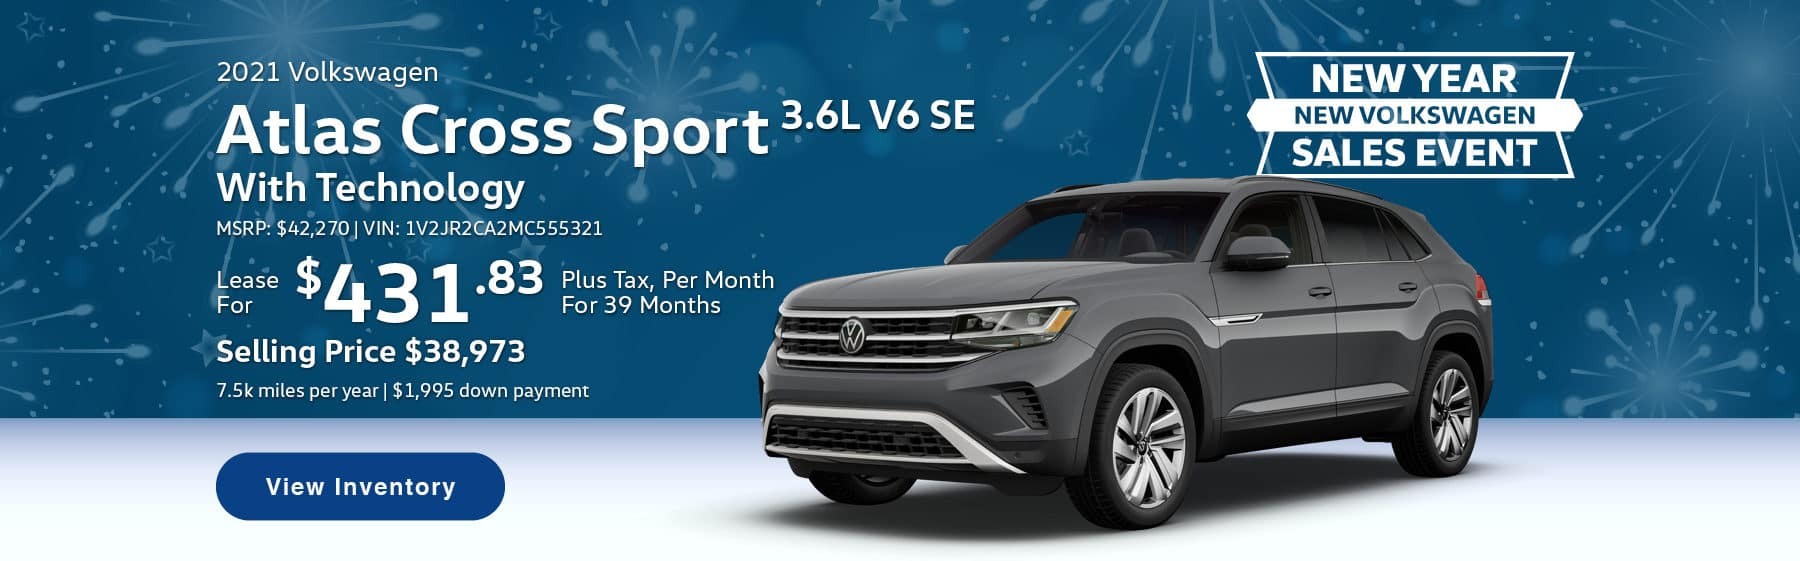 Lease the 2021 Atlas Cross Sport 3.6L V6 SE With Technology for $431.83 per month, plus tax for 39 months. Selling price is $38,973. 7,500 miles per year. $1,995 down payment. $41,350 MSRP. Vin #: 1V2JE2CA7MC209471.